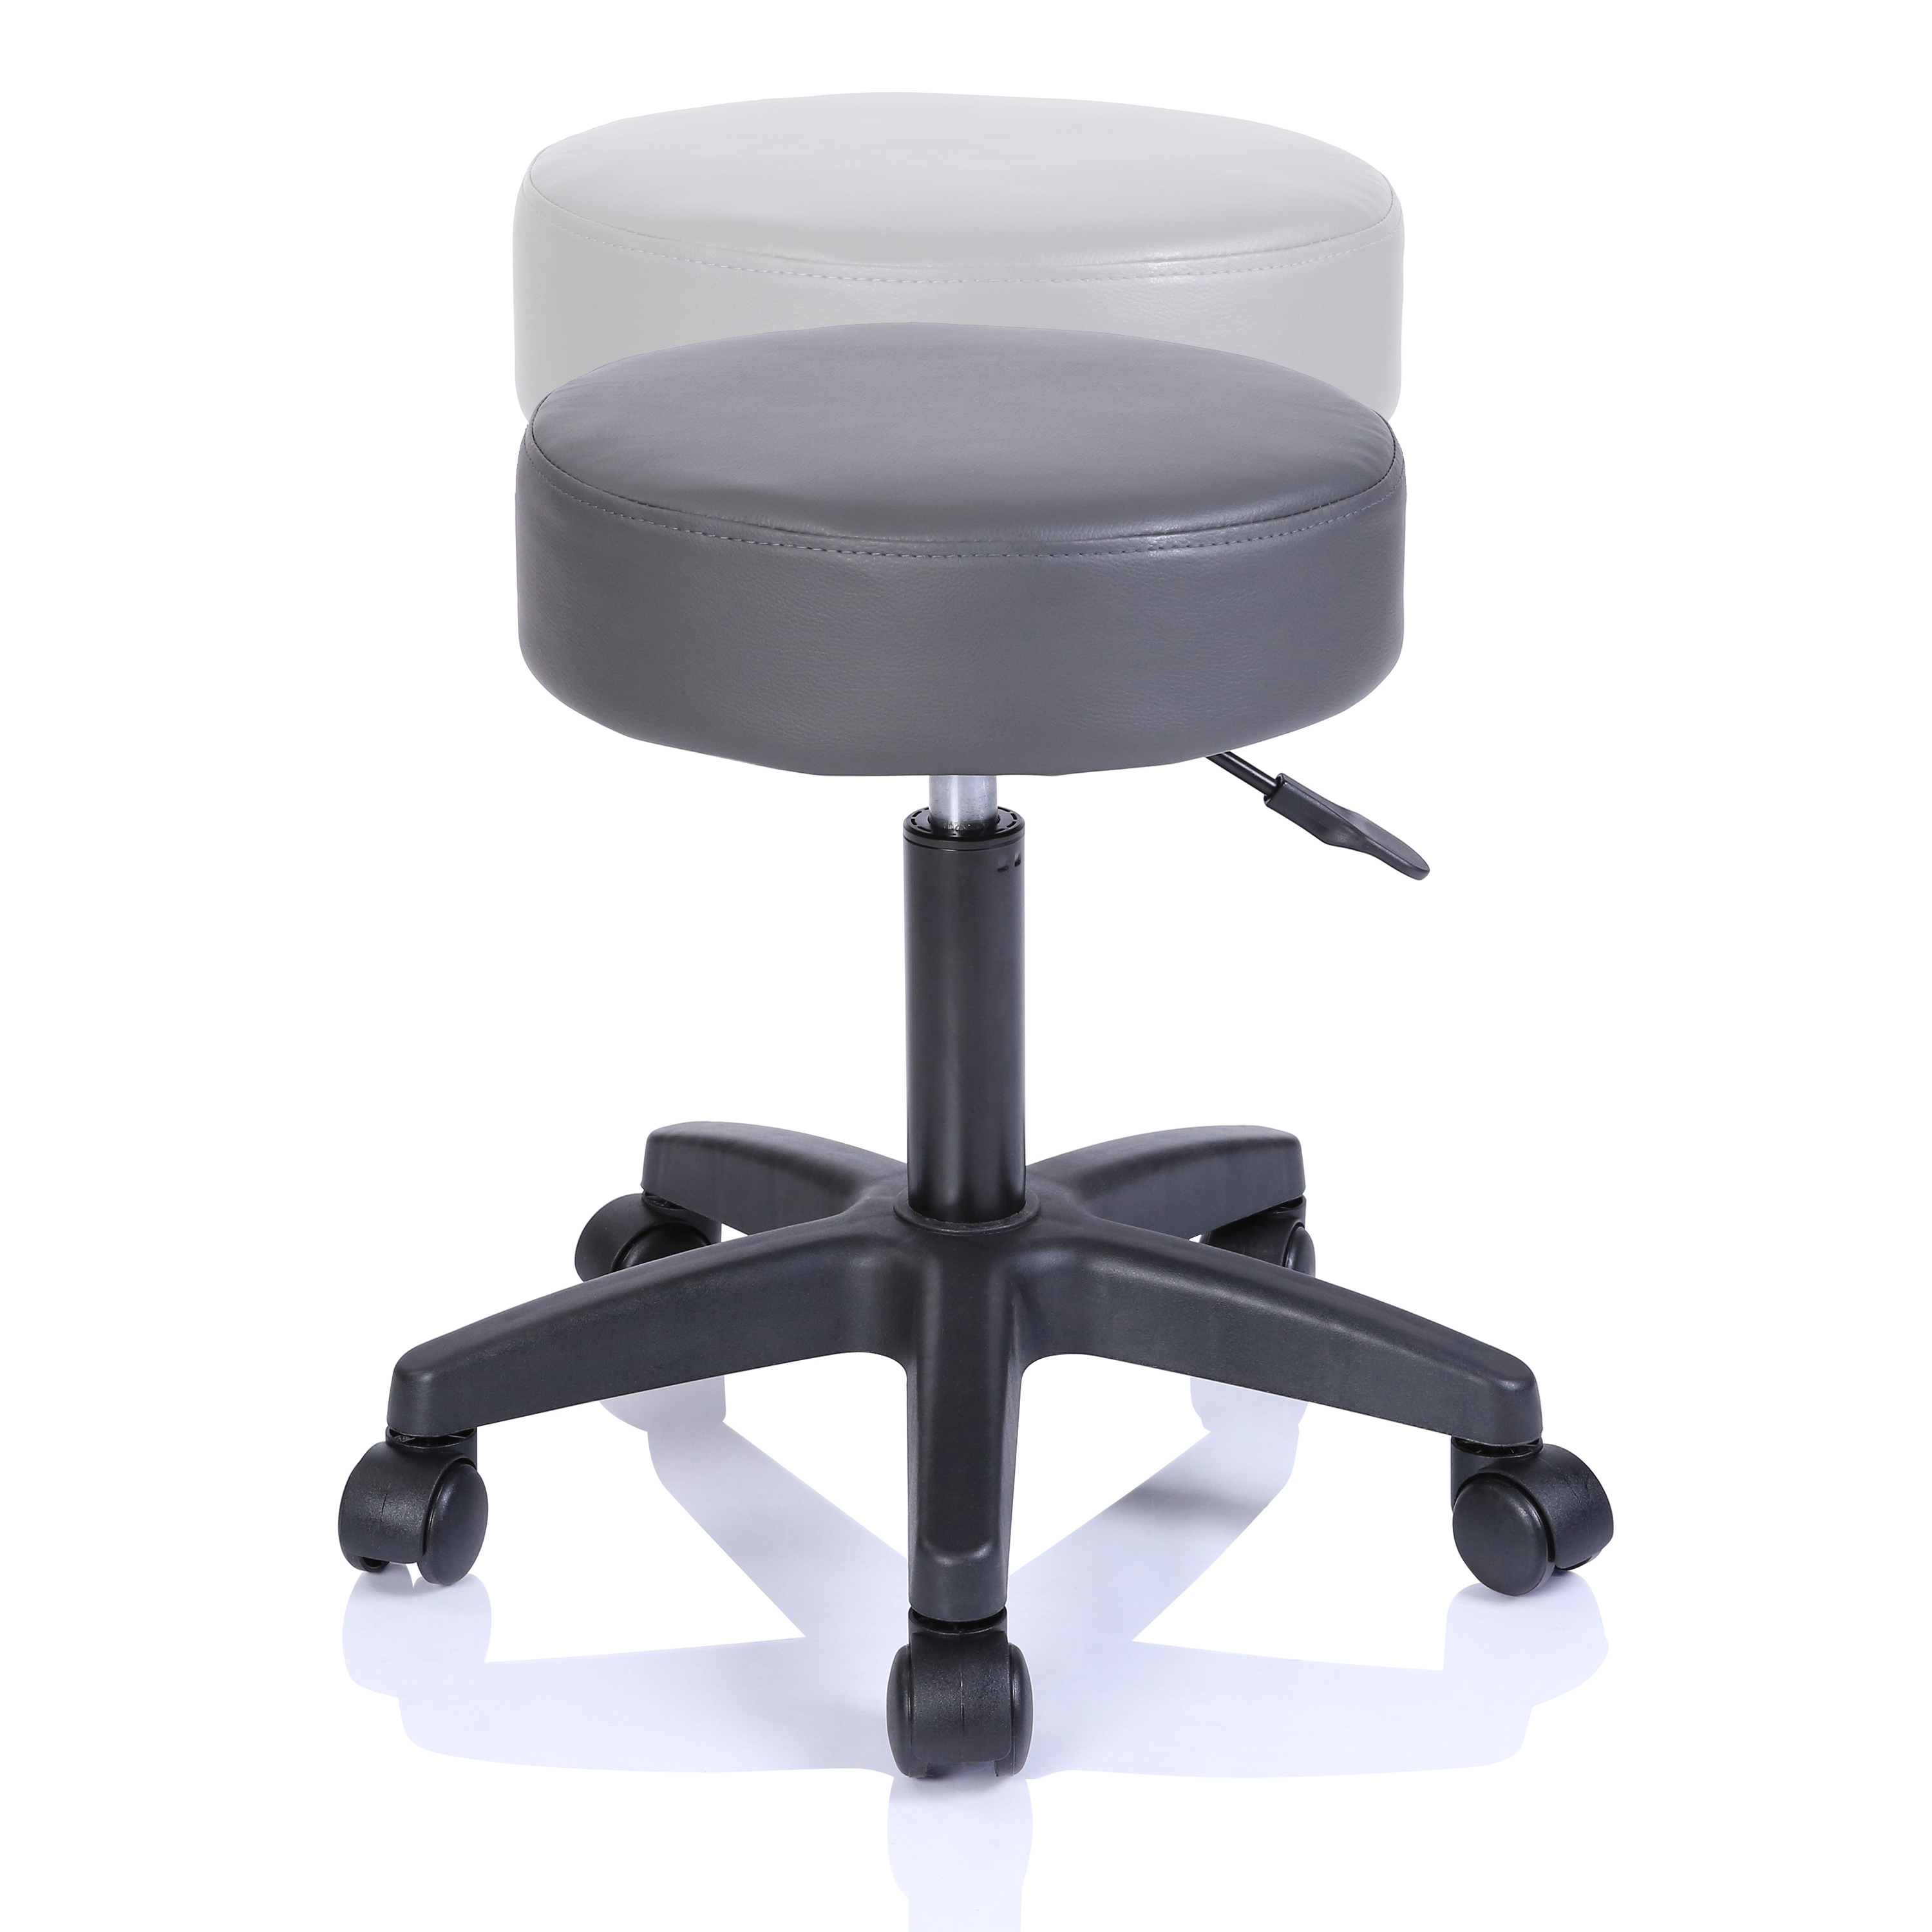 Stool Swivel Chair Black Adjustable Height Chair Office